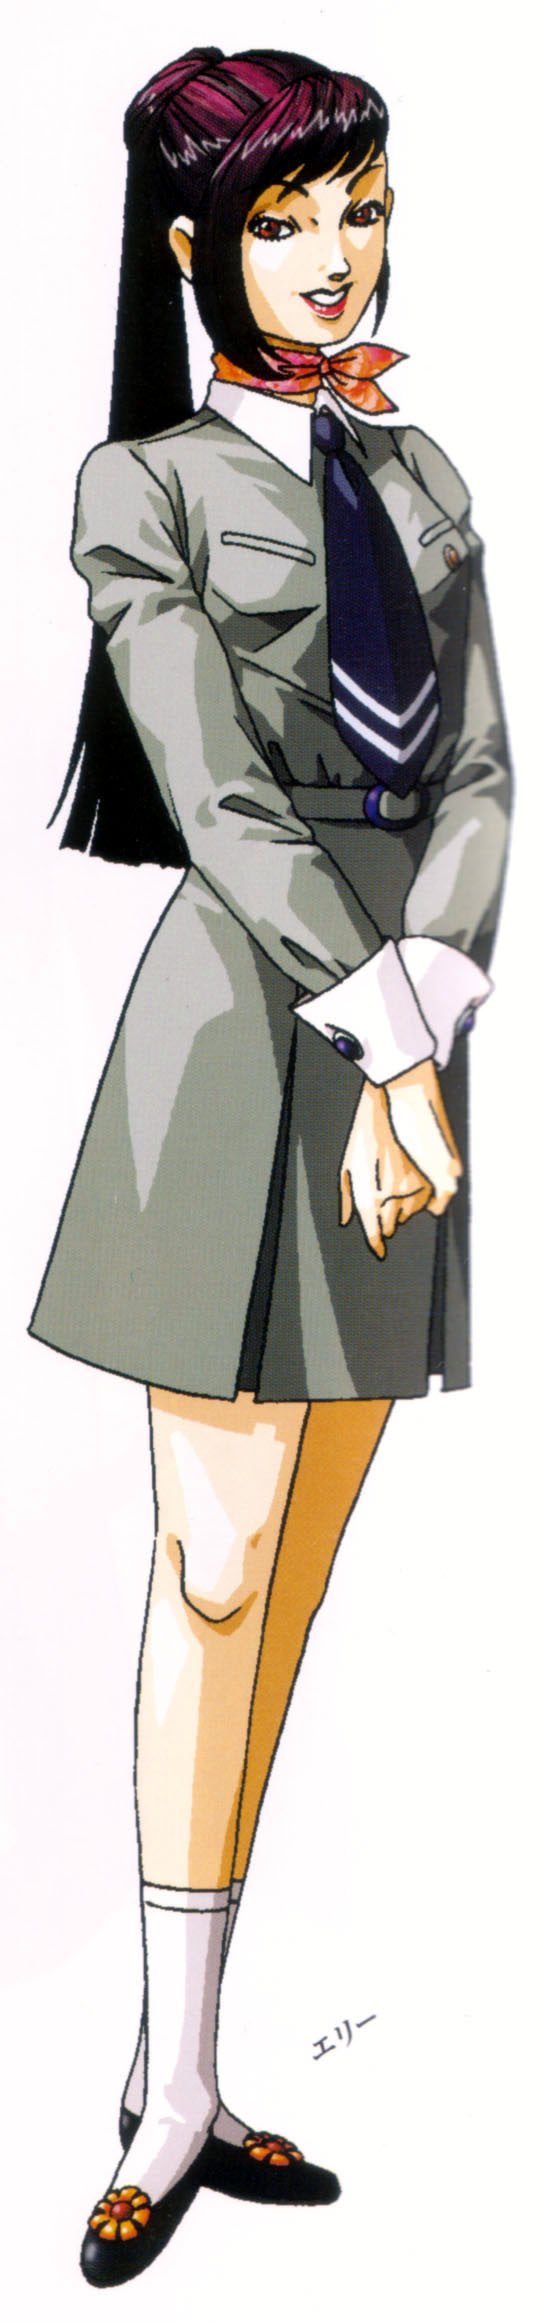 artist_request kirishima_eriko looking_at_viewer official_art persona persona_1 ponytail red_eyes